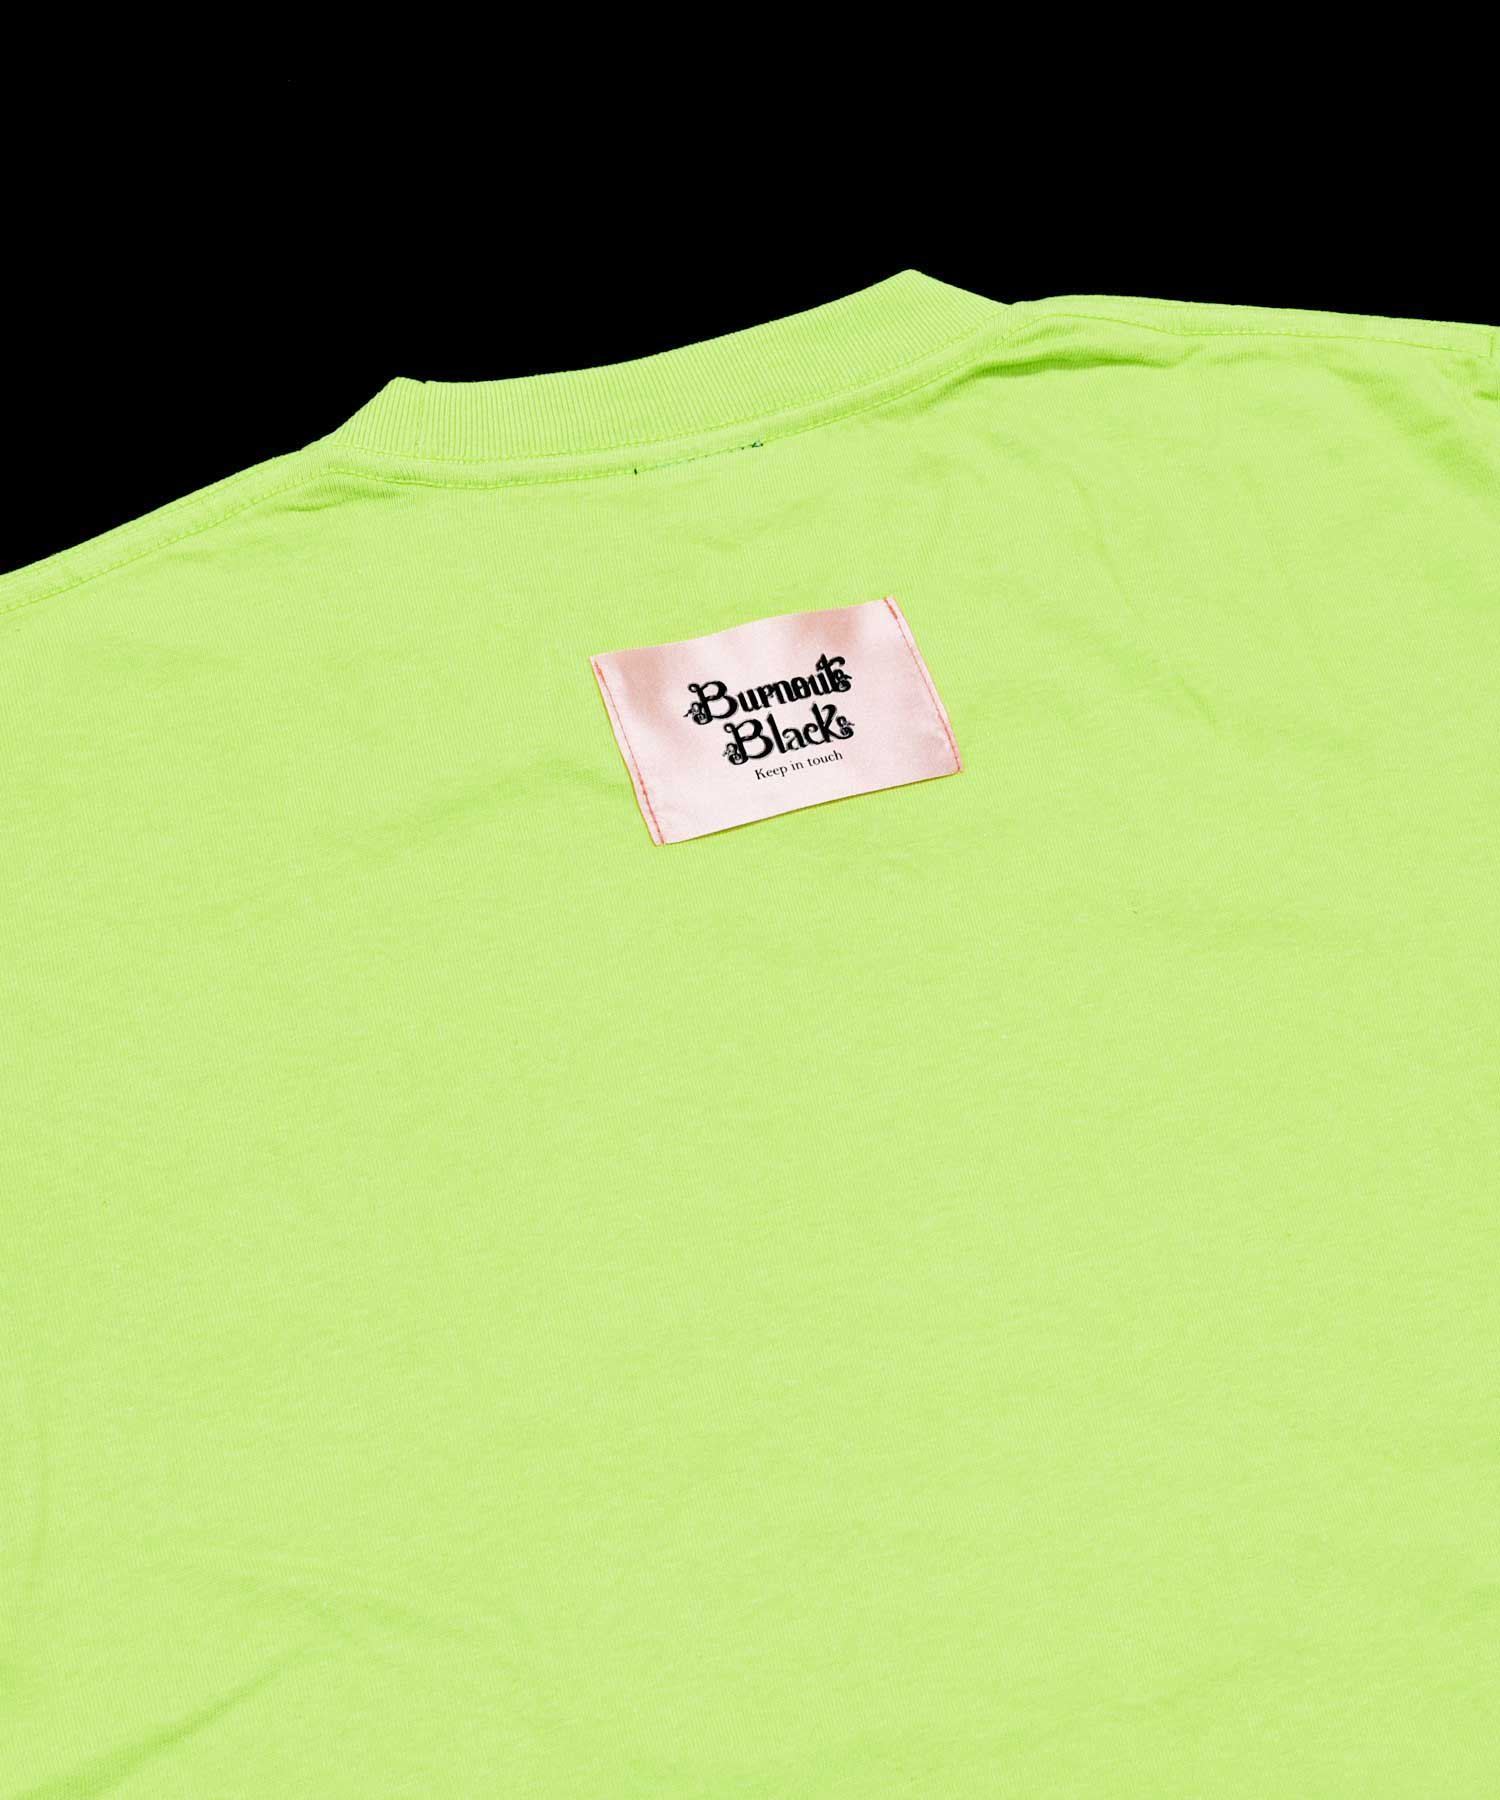 KEEP IN TOUCH T-SHIRT / LIGHT GREEN